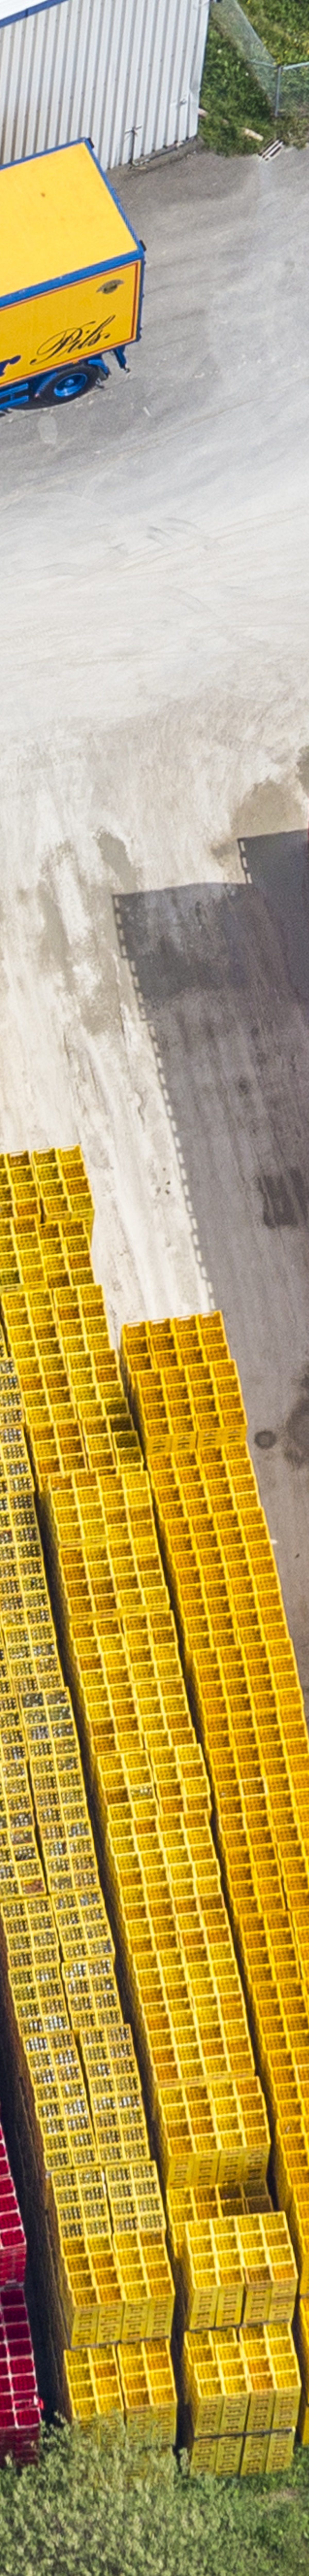 Aerial view of the storage area for beer crates of a brewery - Klaus Leidorf Aerial Photography